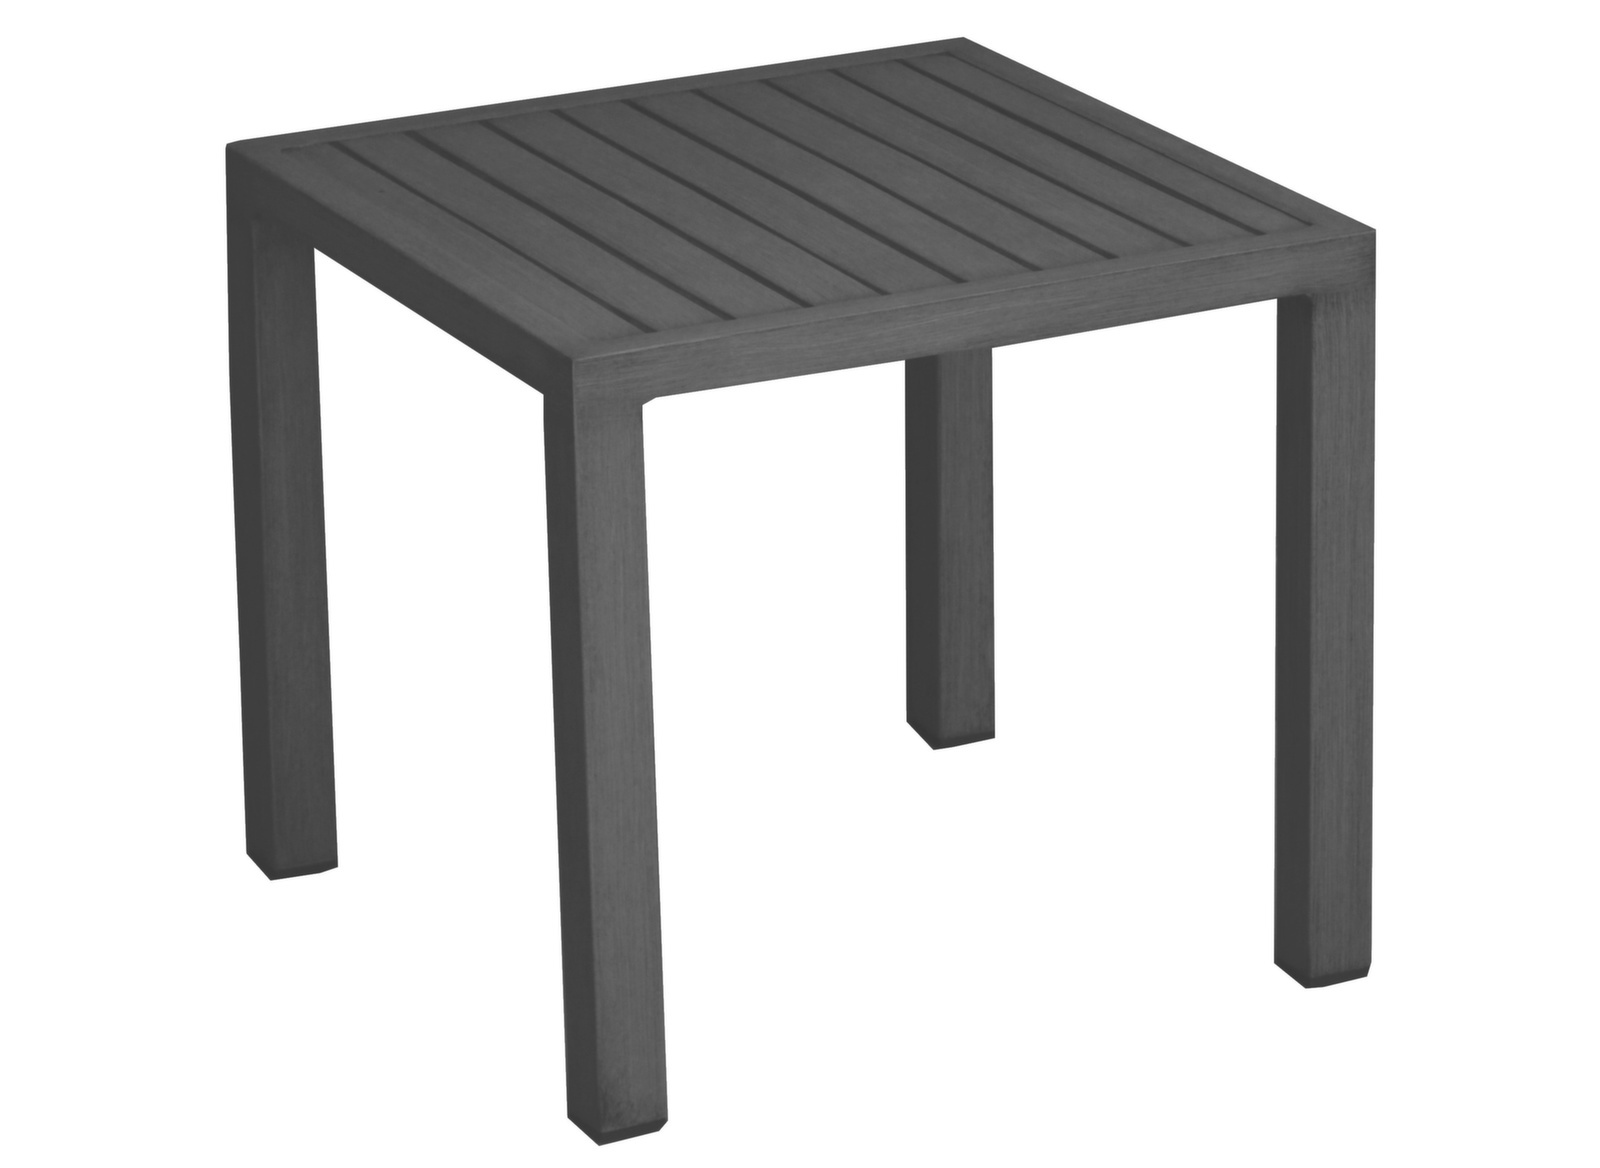 Table basse de jardin carrée 40 cm Lou - Tables basses ...